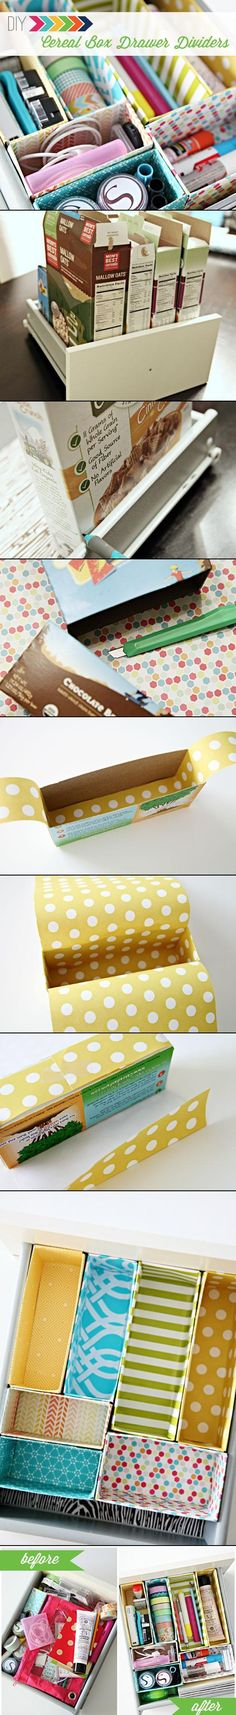 DIY Cereal Box Drawer Dividers, by I Heart Organizing. (LOVE this idea!).